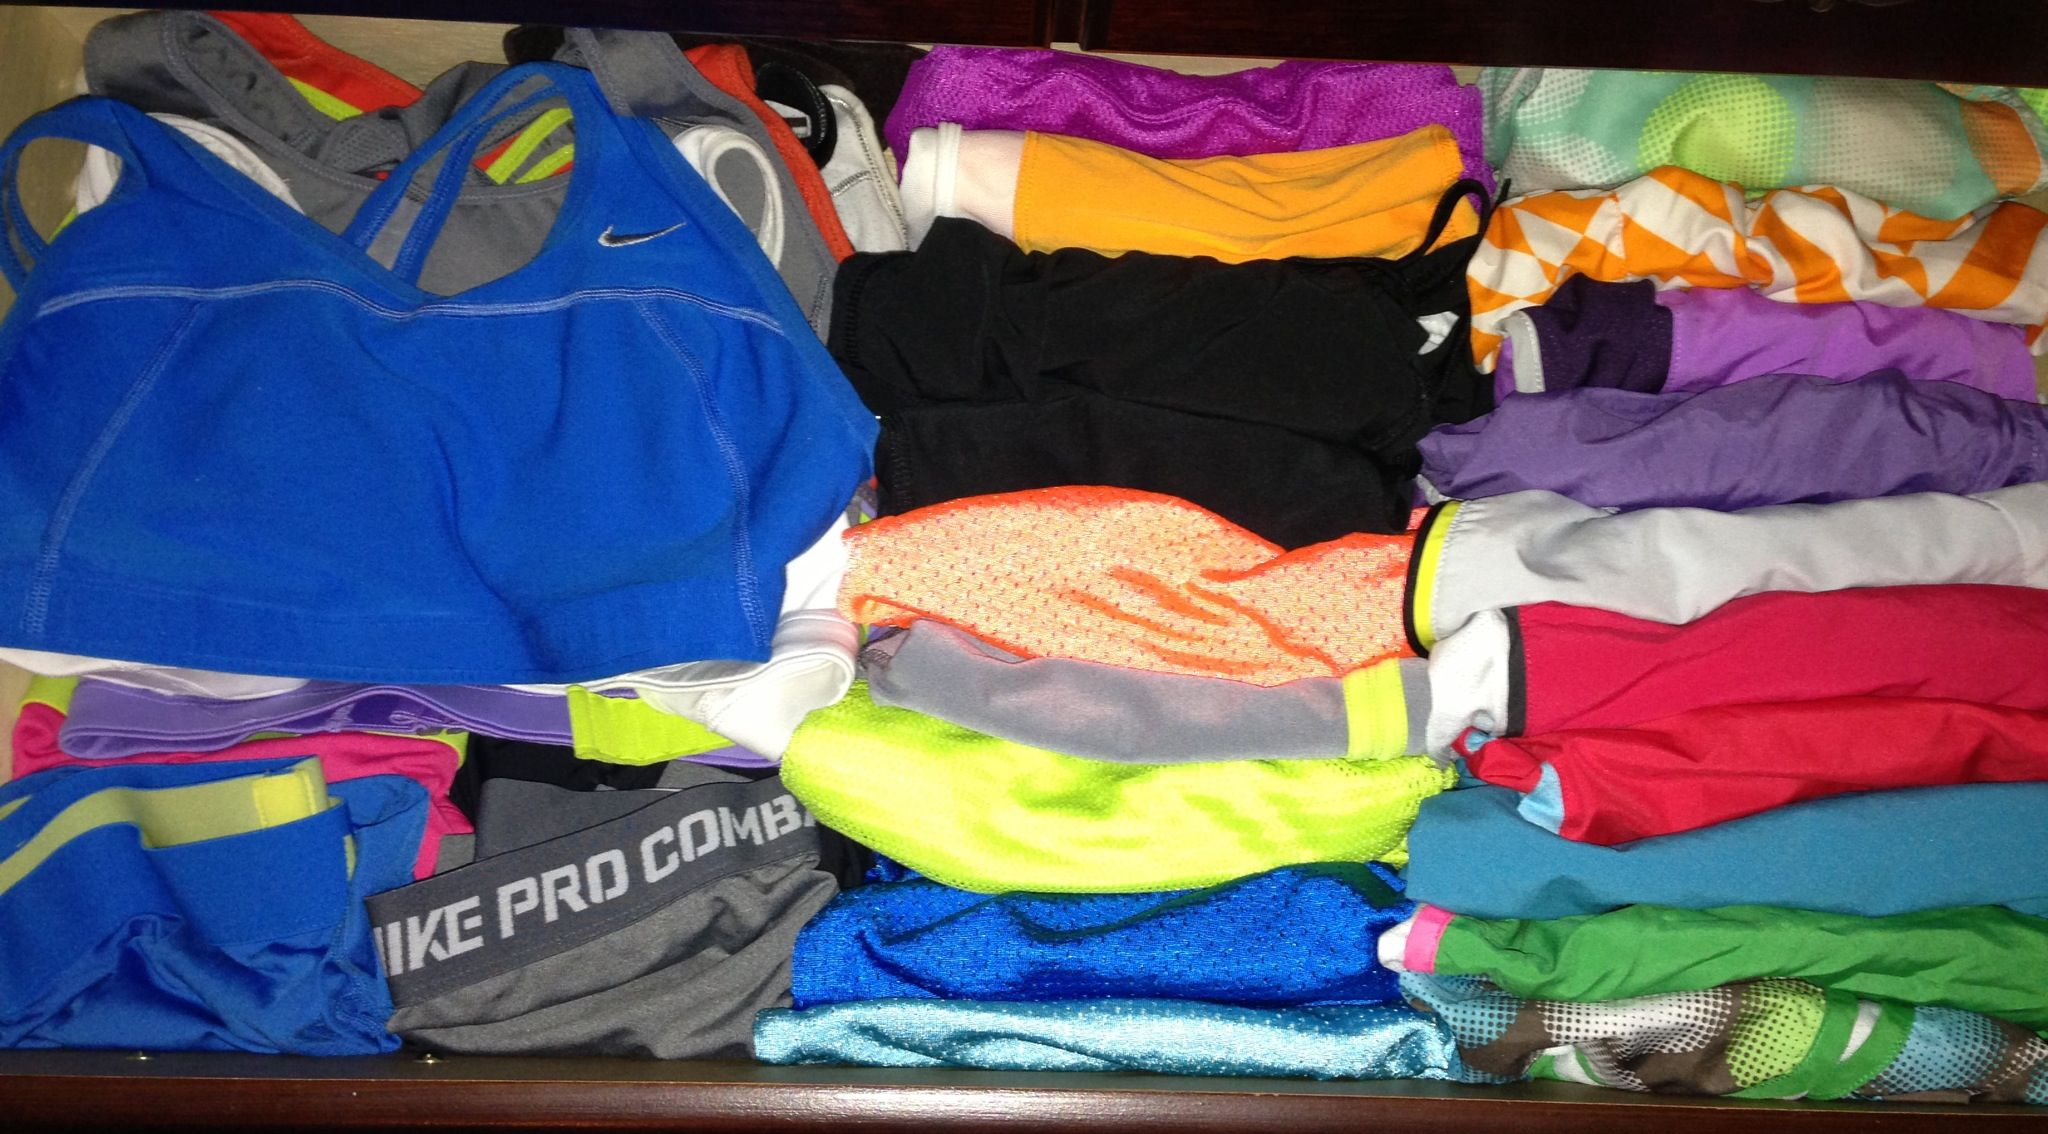 Roll shorts up to fit more in drawer and easier to see. Workout, Nike, workout clothes, fitness.